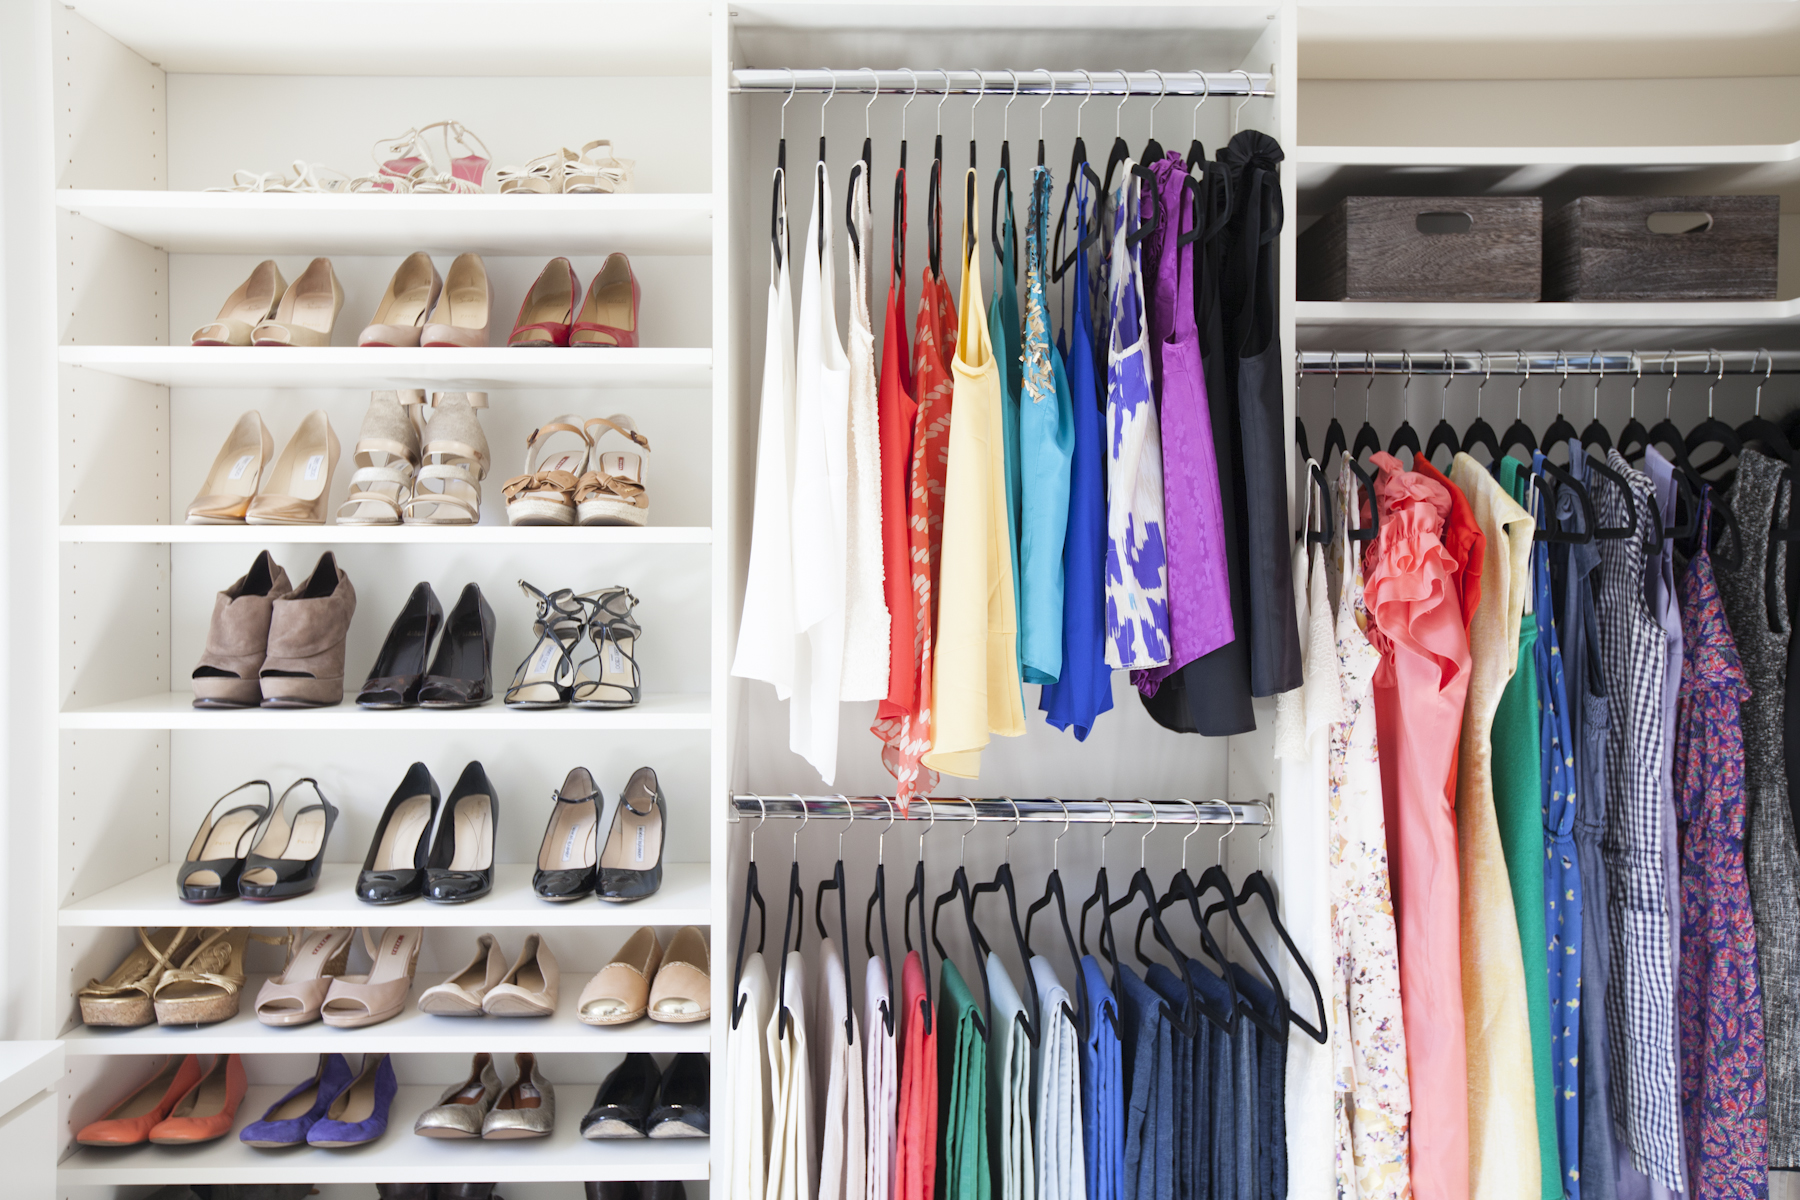 living clothes your harris homes stored closet need jillian than laundry lolv s arrange after shares be and top western what inside will organizing differently linens organized her design to tips according